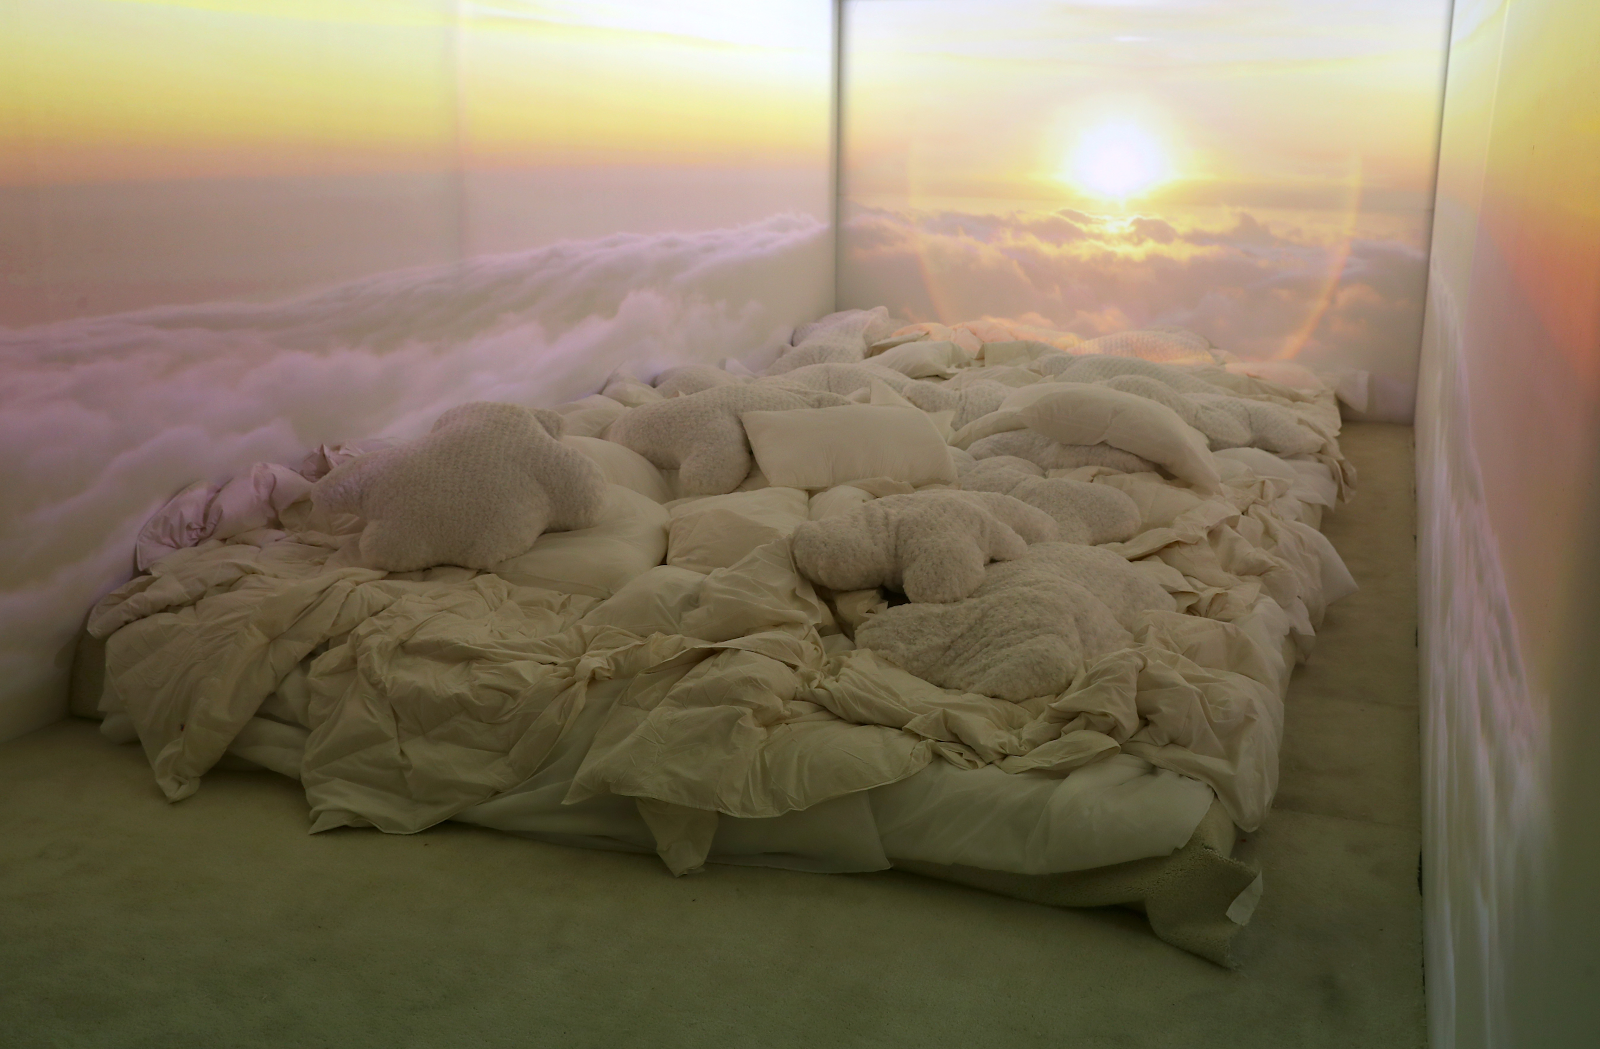 Image of a room within Spotify's Billie Eilish Experience